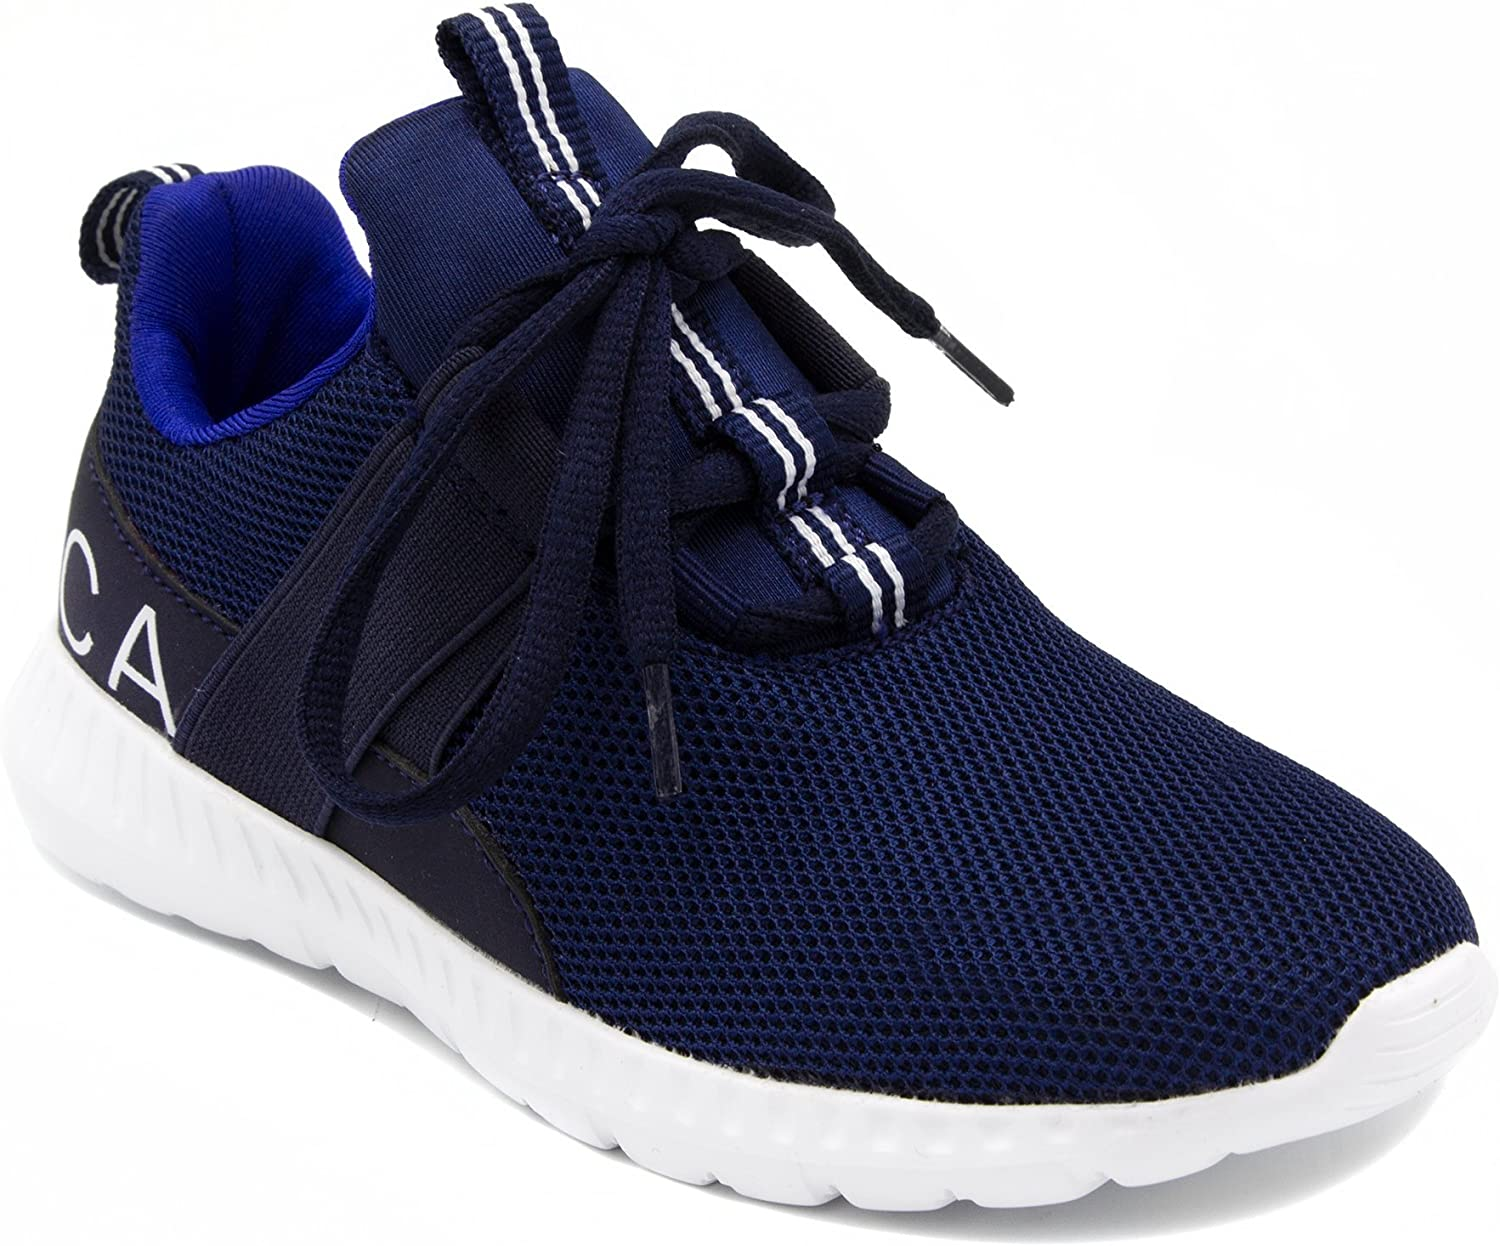 1a7ff033dfb139 Nautica Kids Boys Sneaker Comfortable Running shoes-Kappil 2 Youth-Navy-13